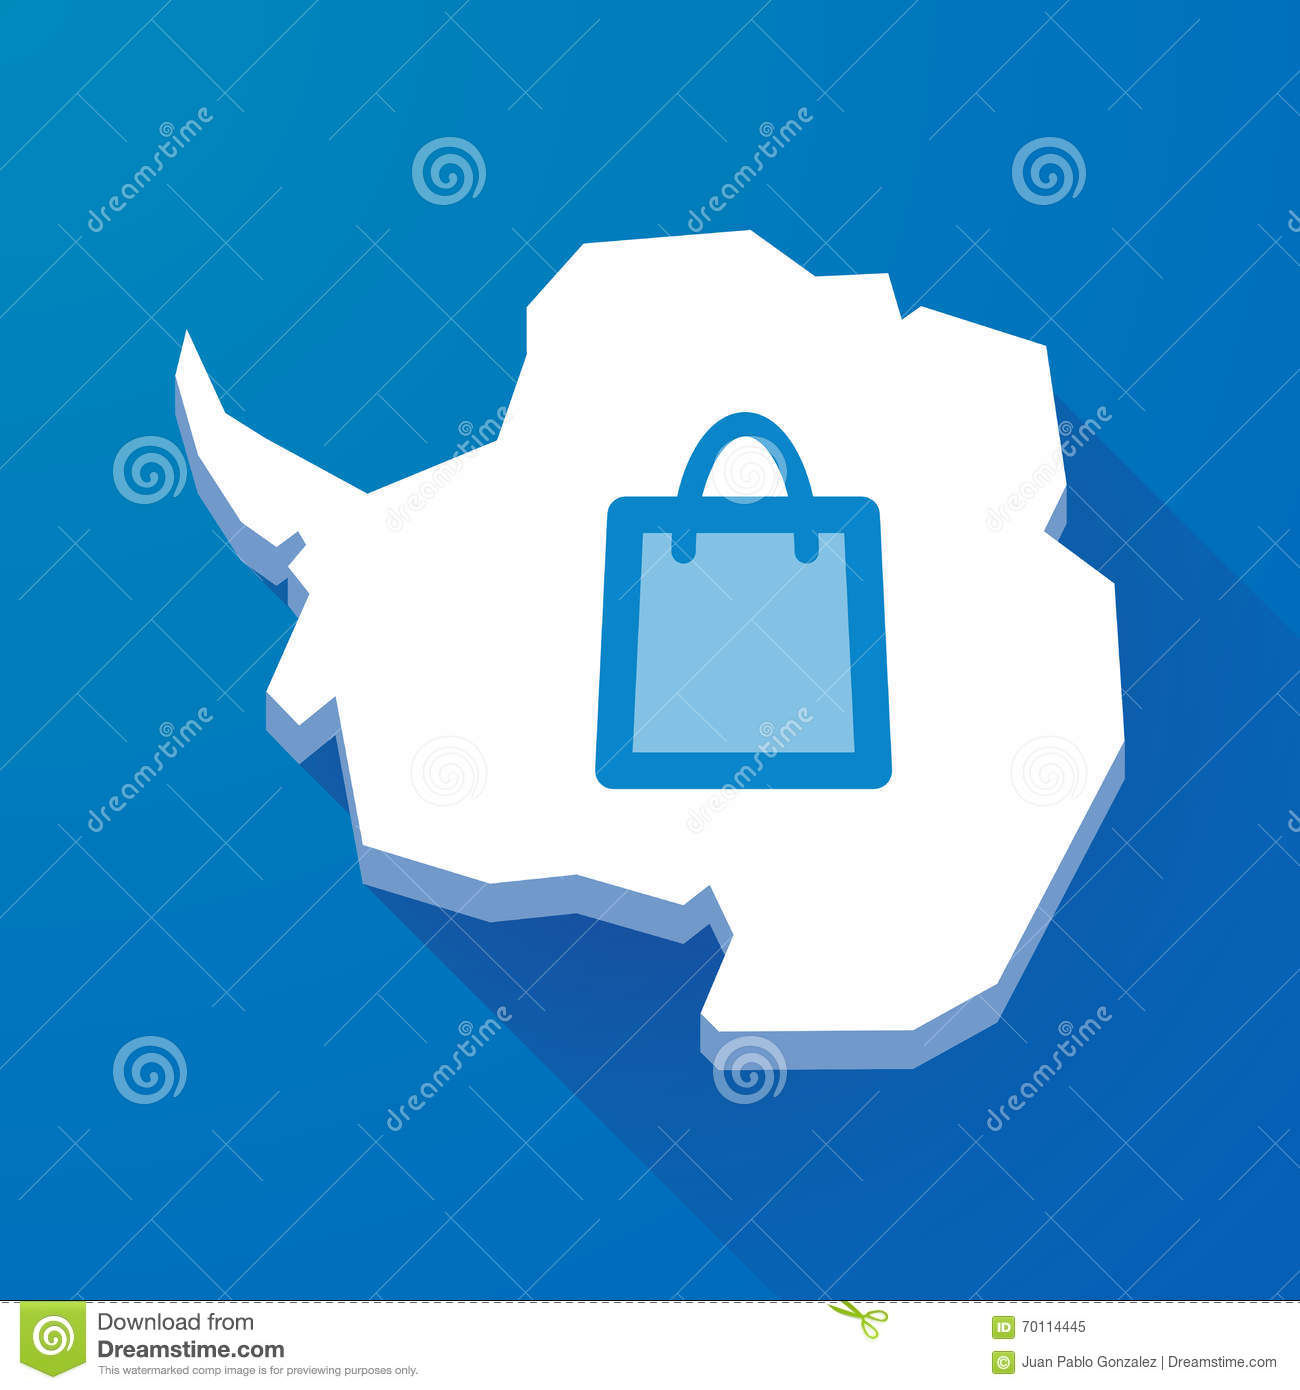 Long shadow map of Antarctica continent with a shopping bag